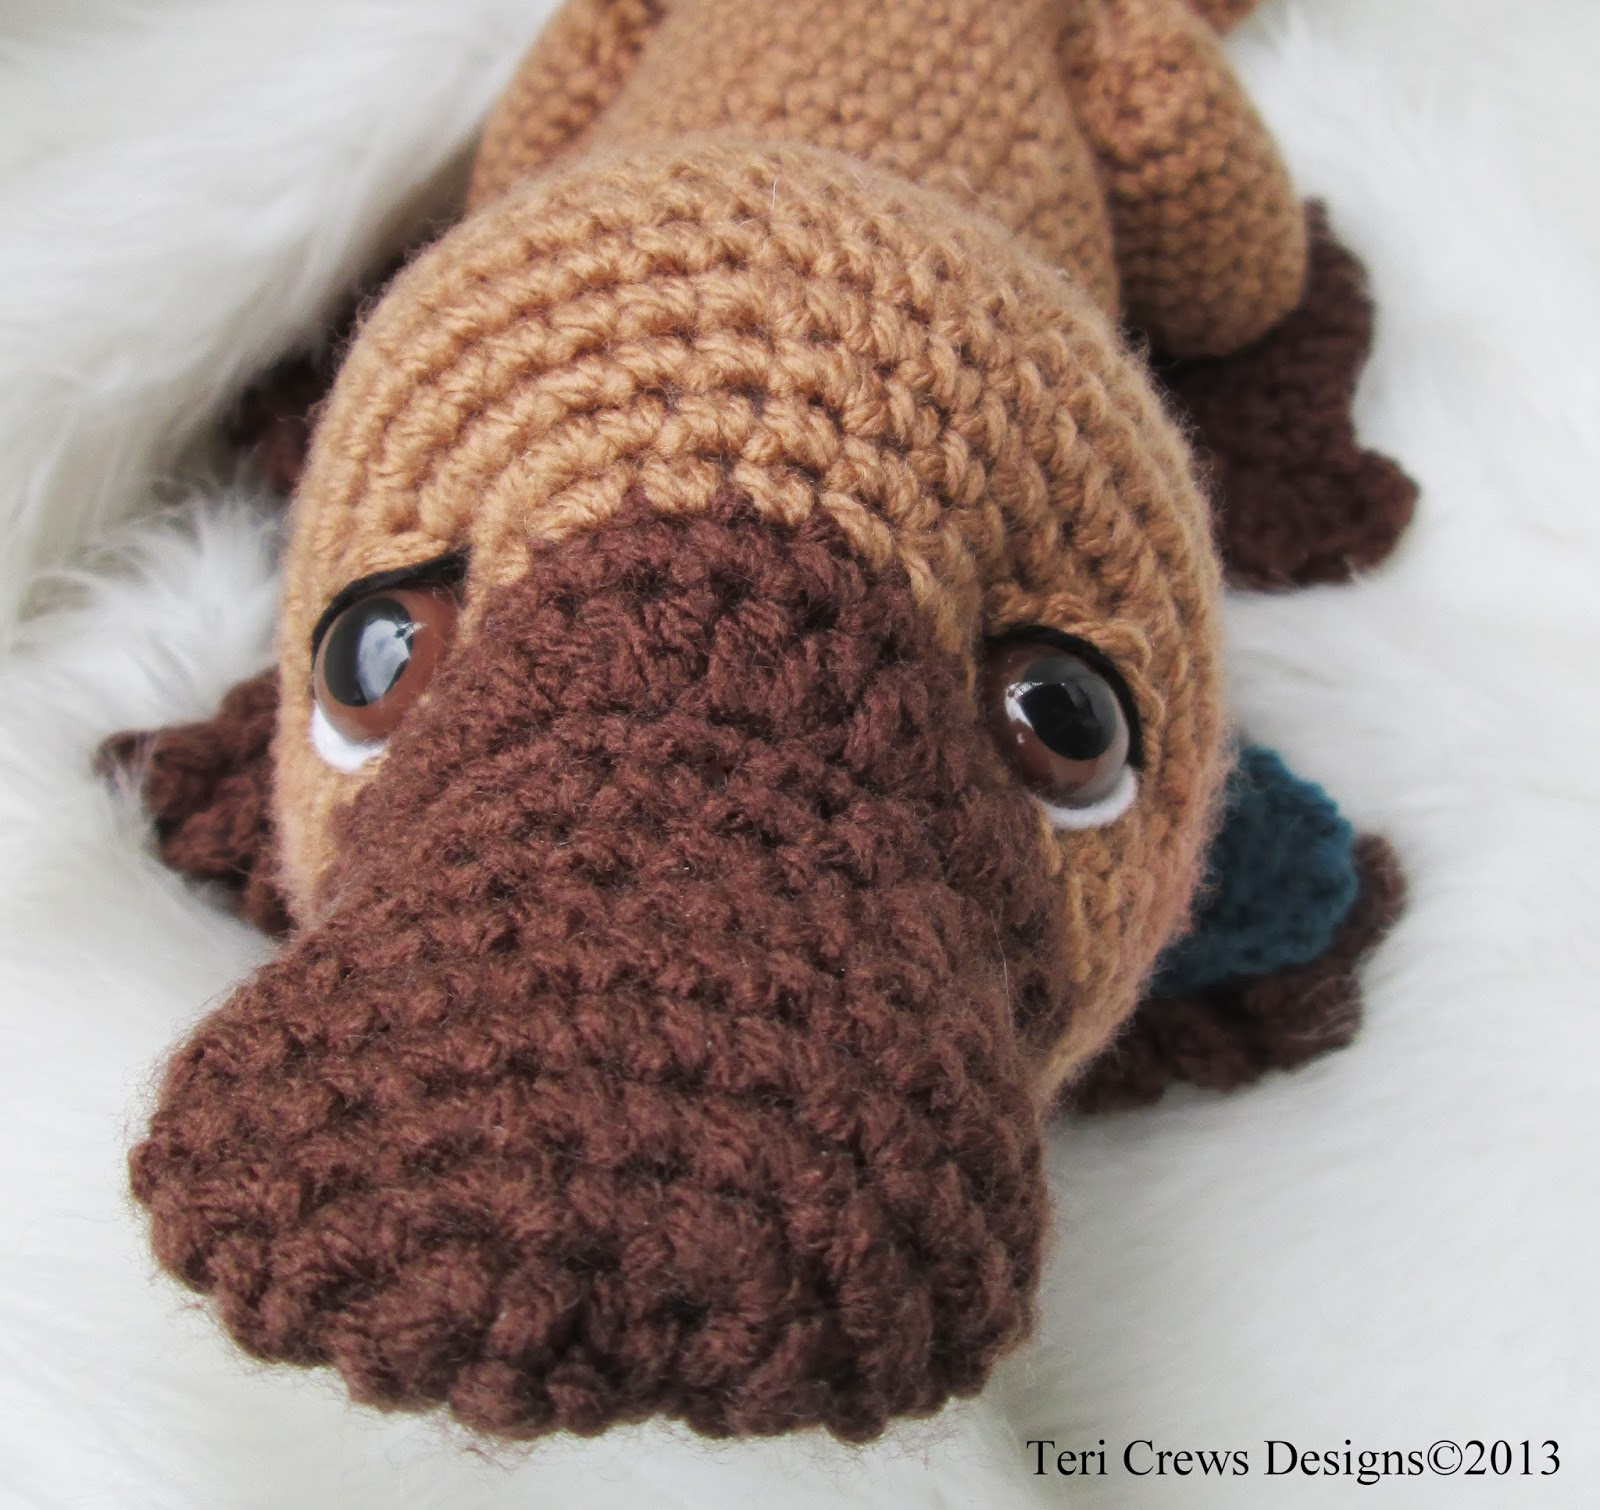 Teris Blog: New Simply Cute Platypus Crochet Pattern